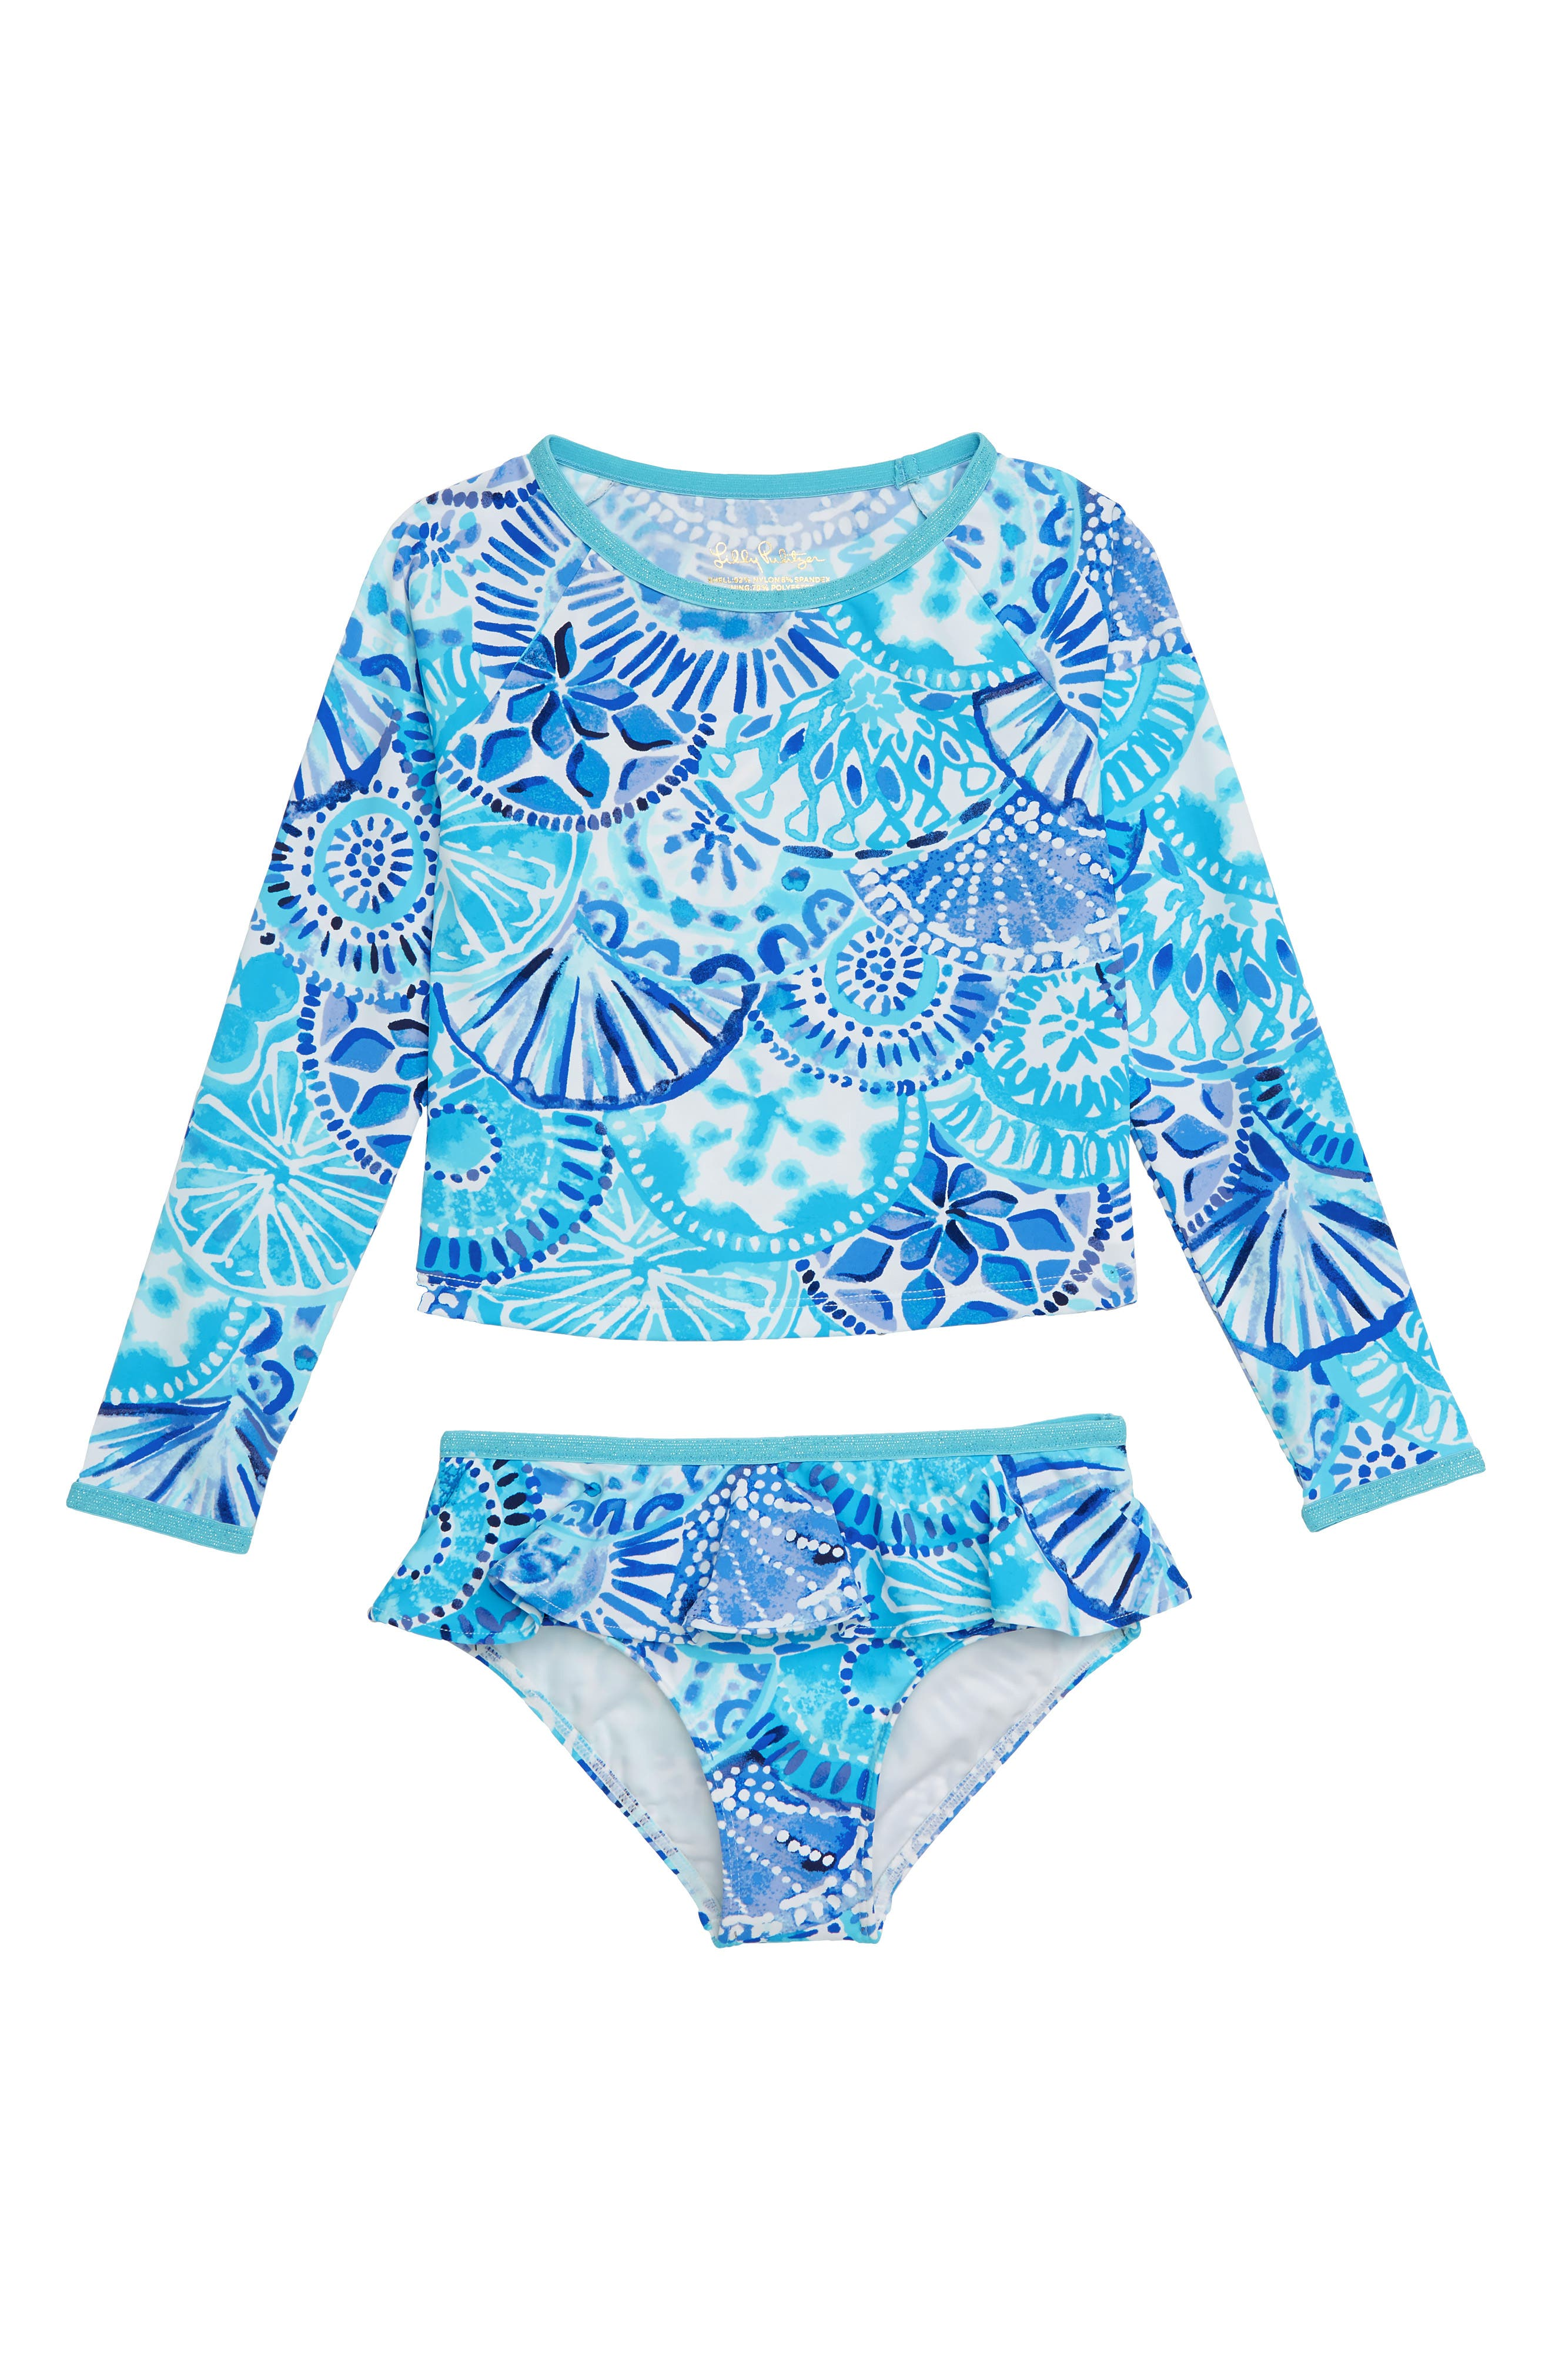 Cora Two-Piece Rashguard Swimsuit,                         Main,                         color, TURQUOISE OASIS HALF SHELL